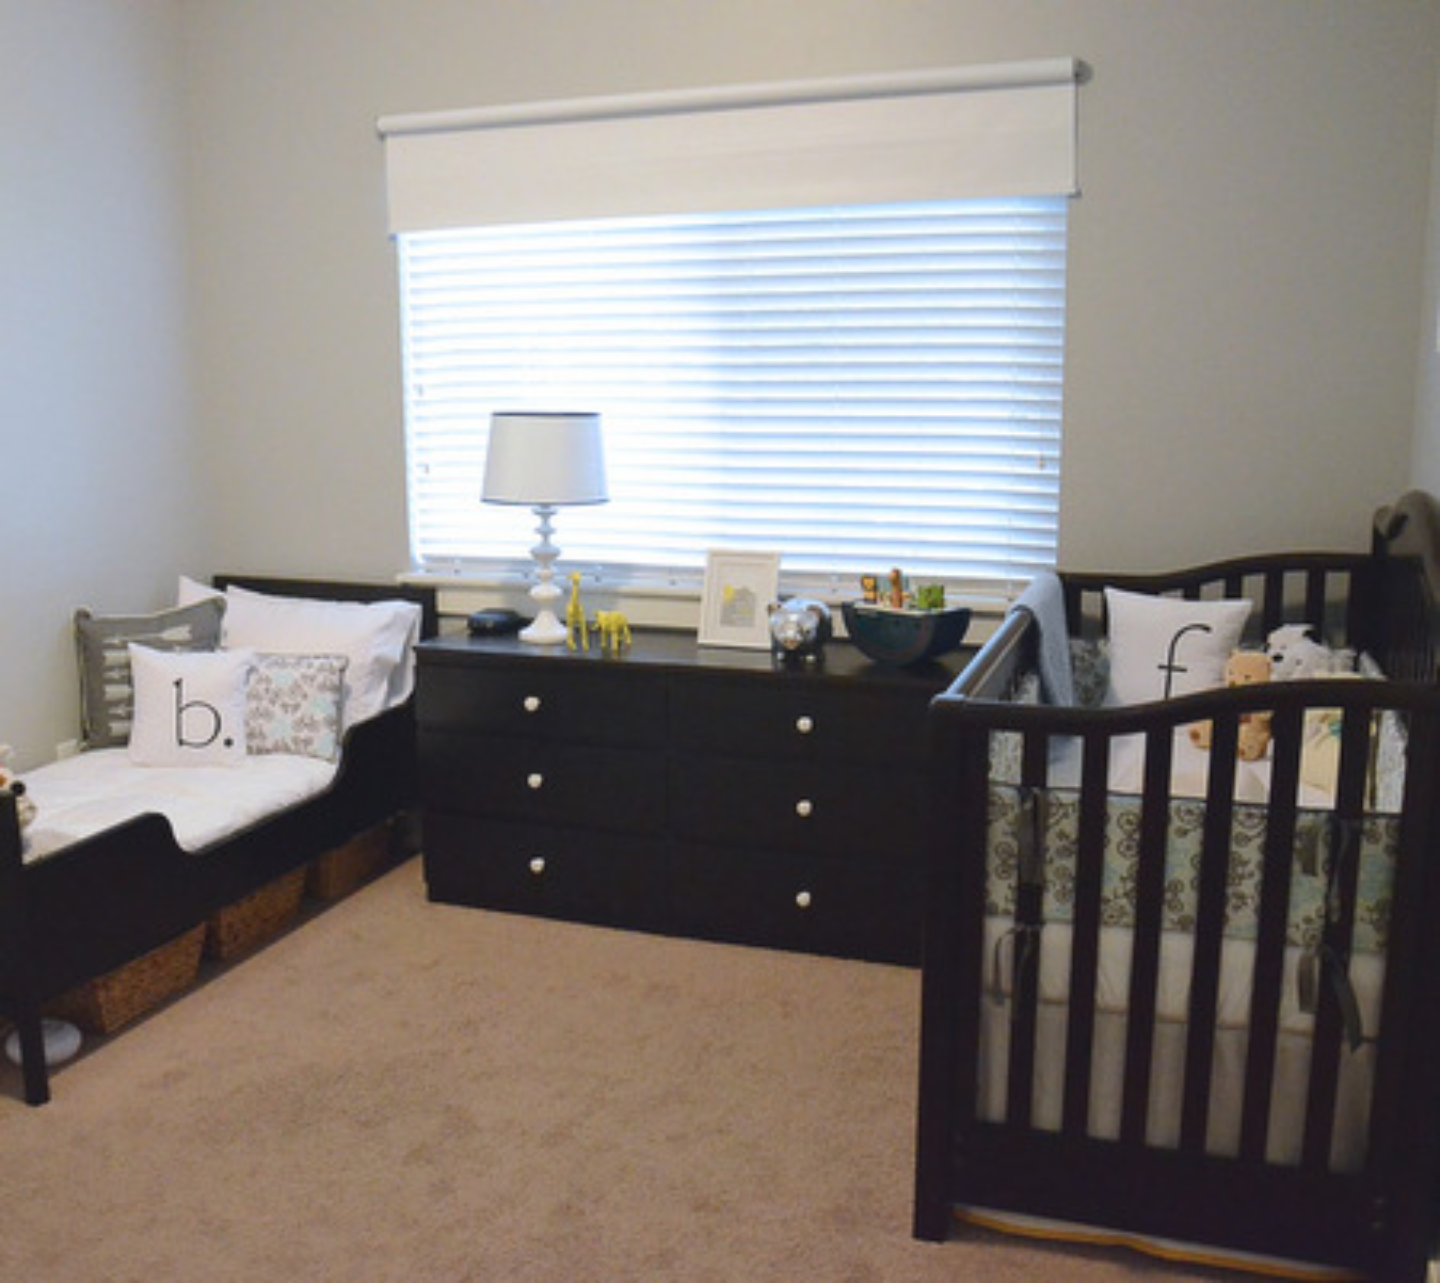 Baby Boy Room Decor Adorable Budget Friendly Boy Nursery: Simple Shared Bedroom For A Toddler And Baby While On A